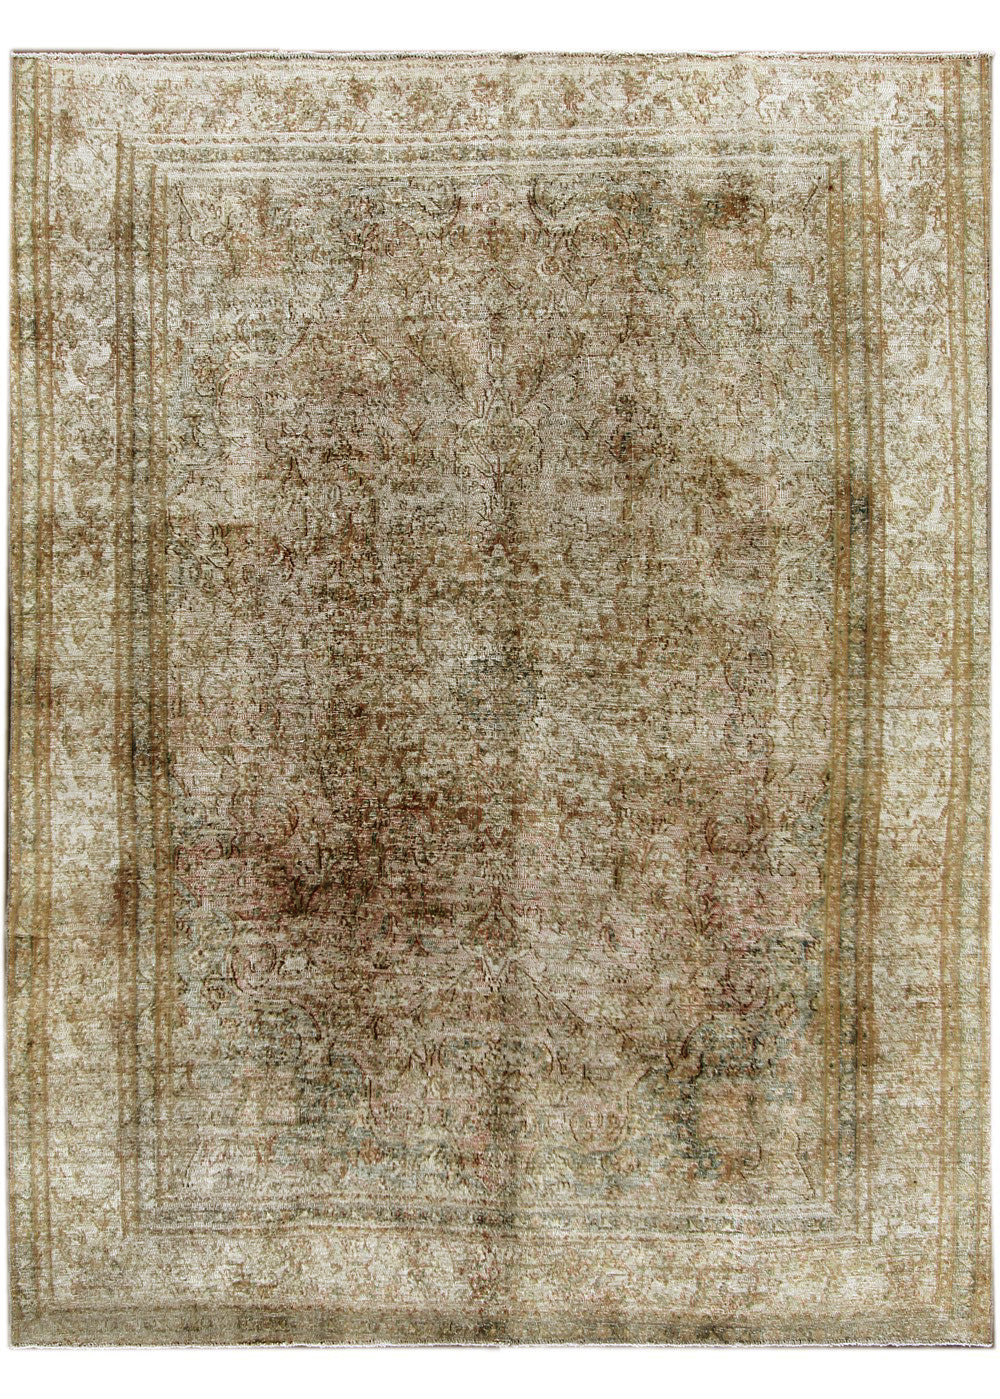 Distressed Tabriz Rug, 9X12